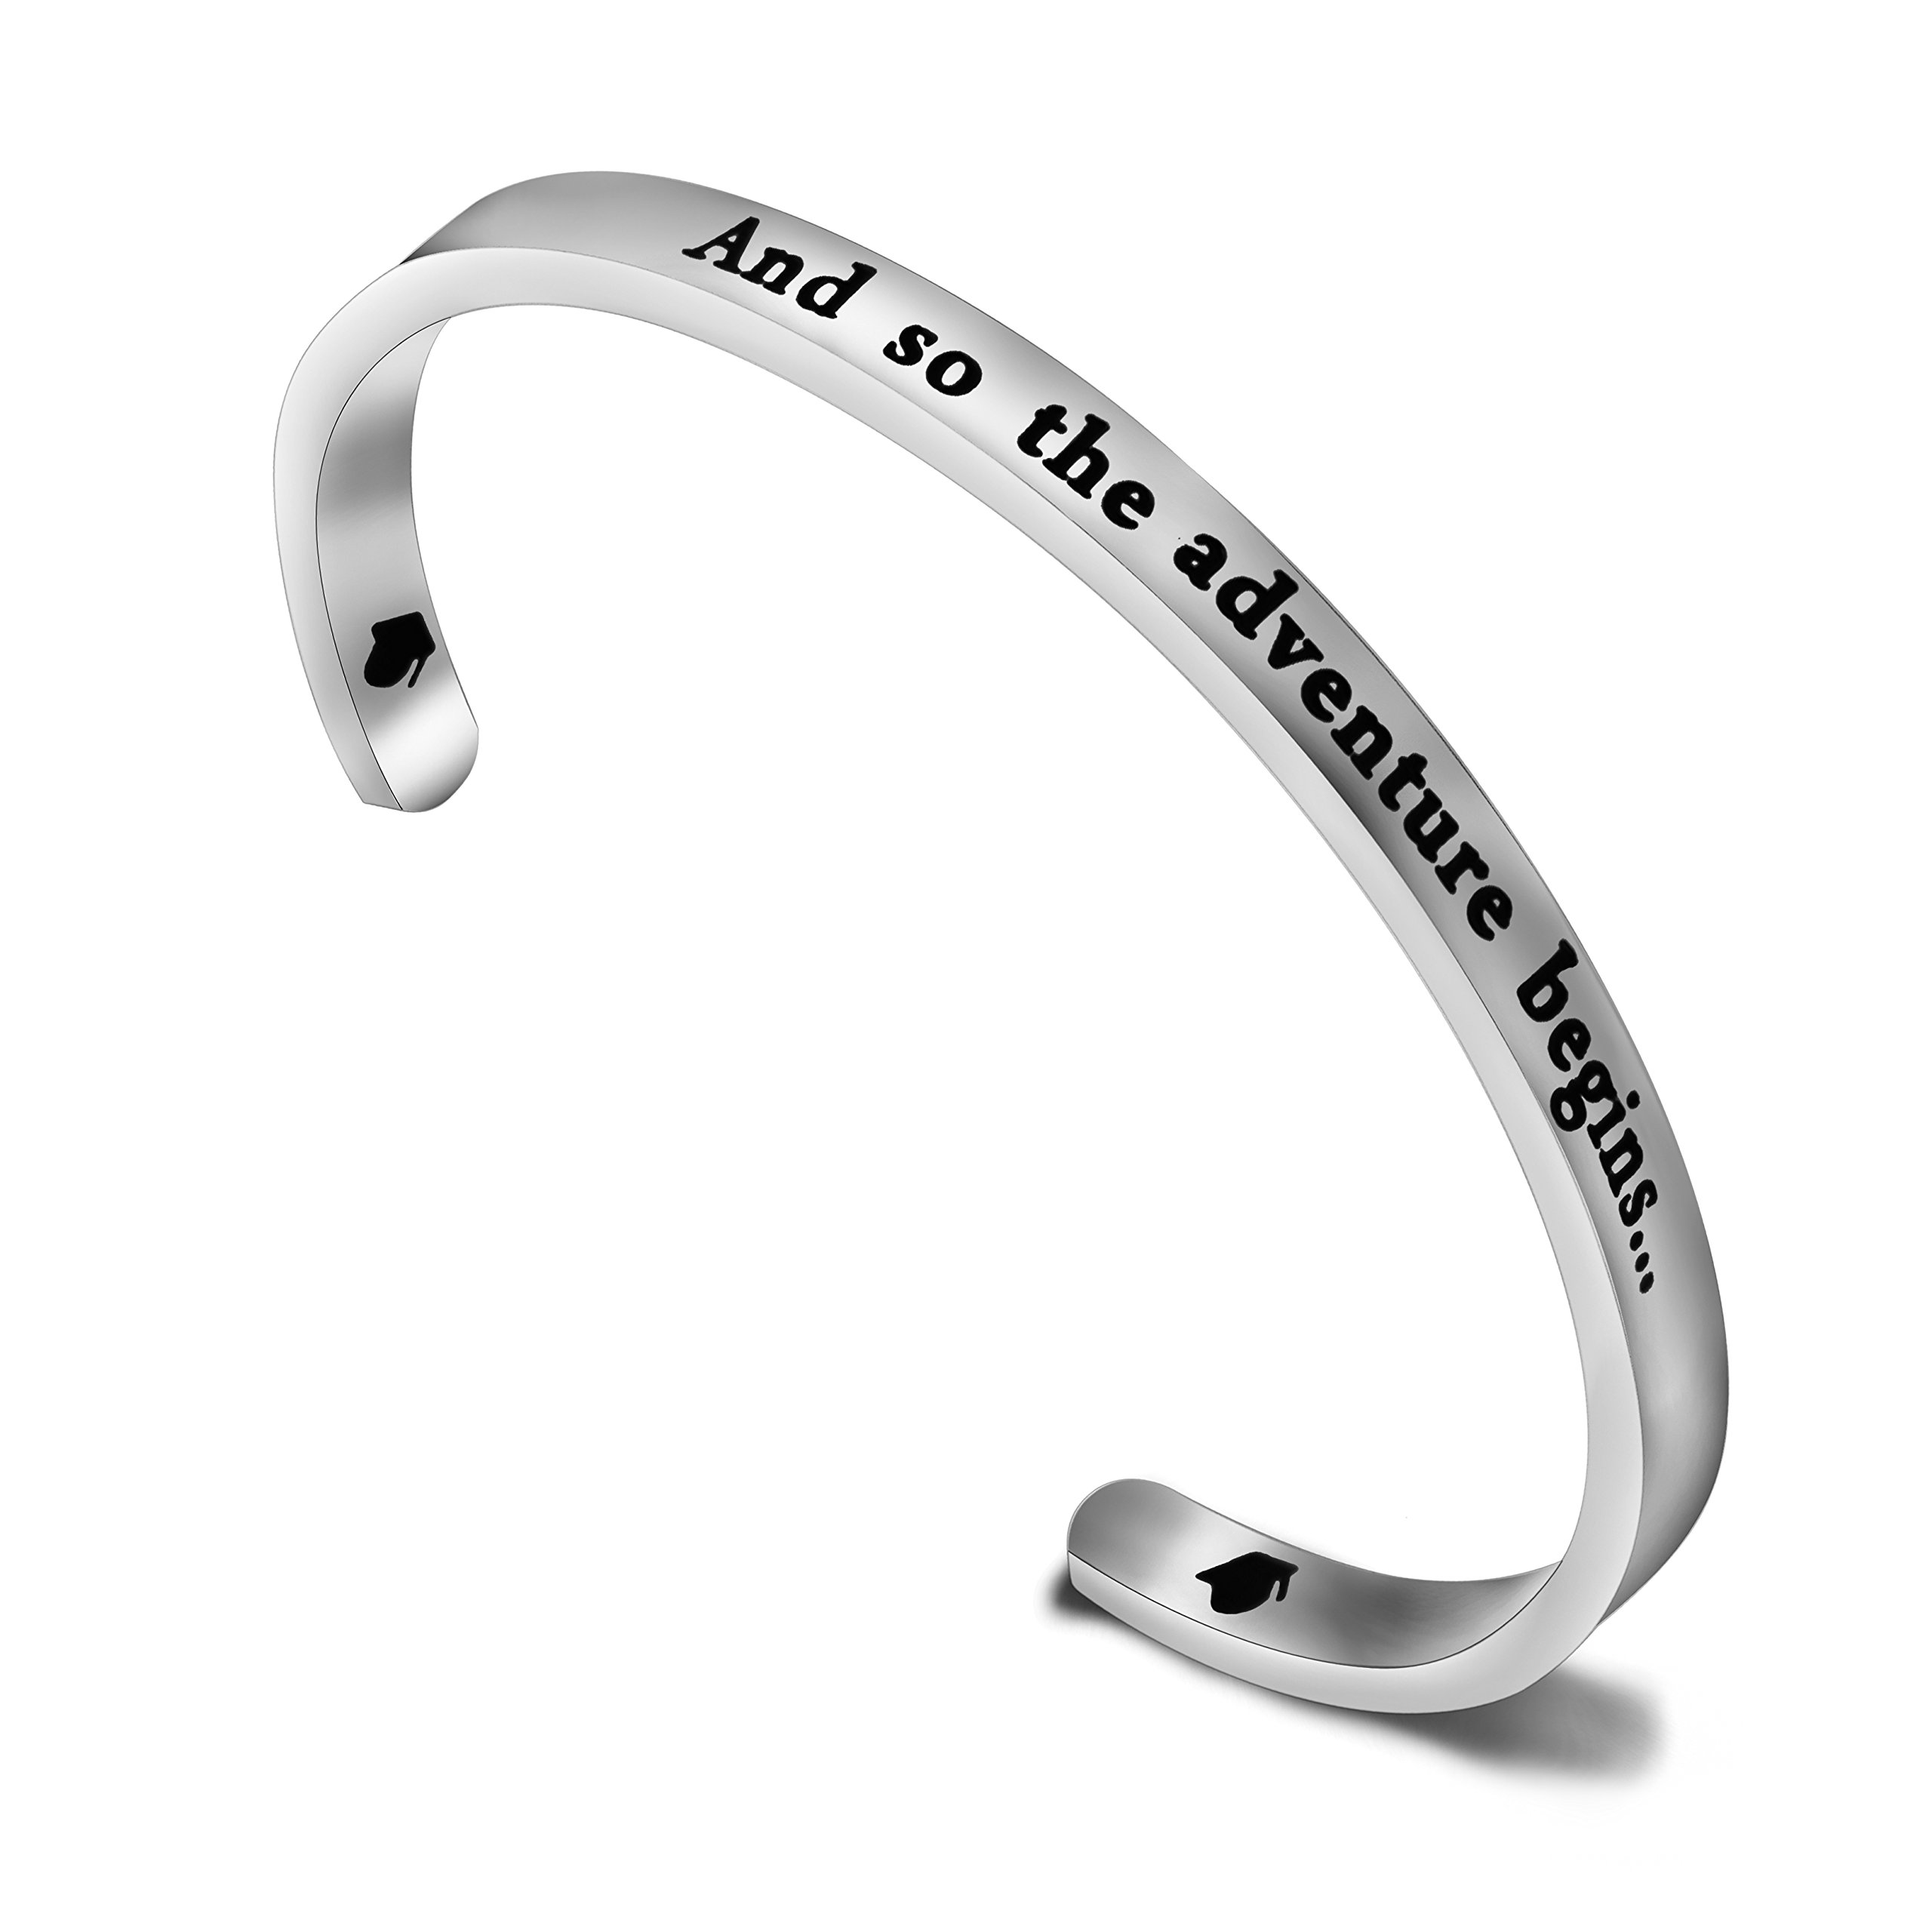 Zuo Bao Graduation Bracelet And So The Adventure Begins Cuff Bracelet Class of 2018 2019 Gift for Graduates (Bracelet)